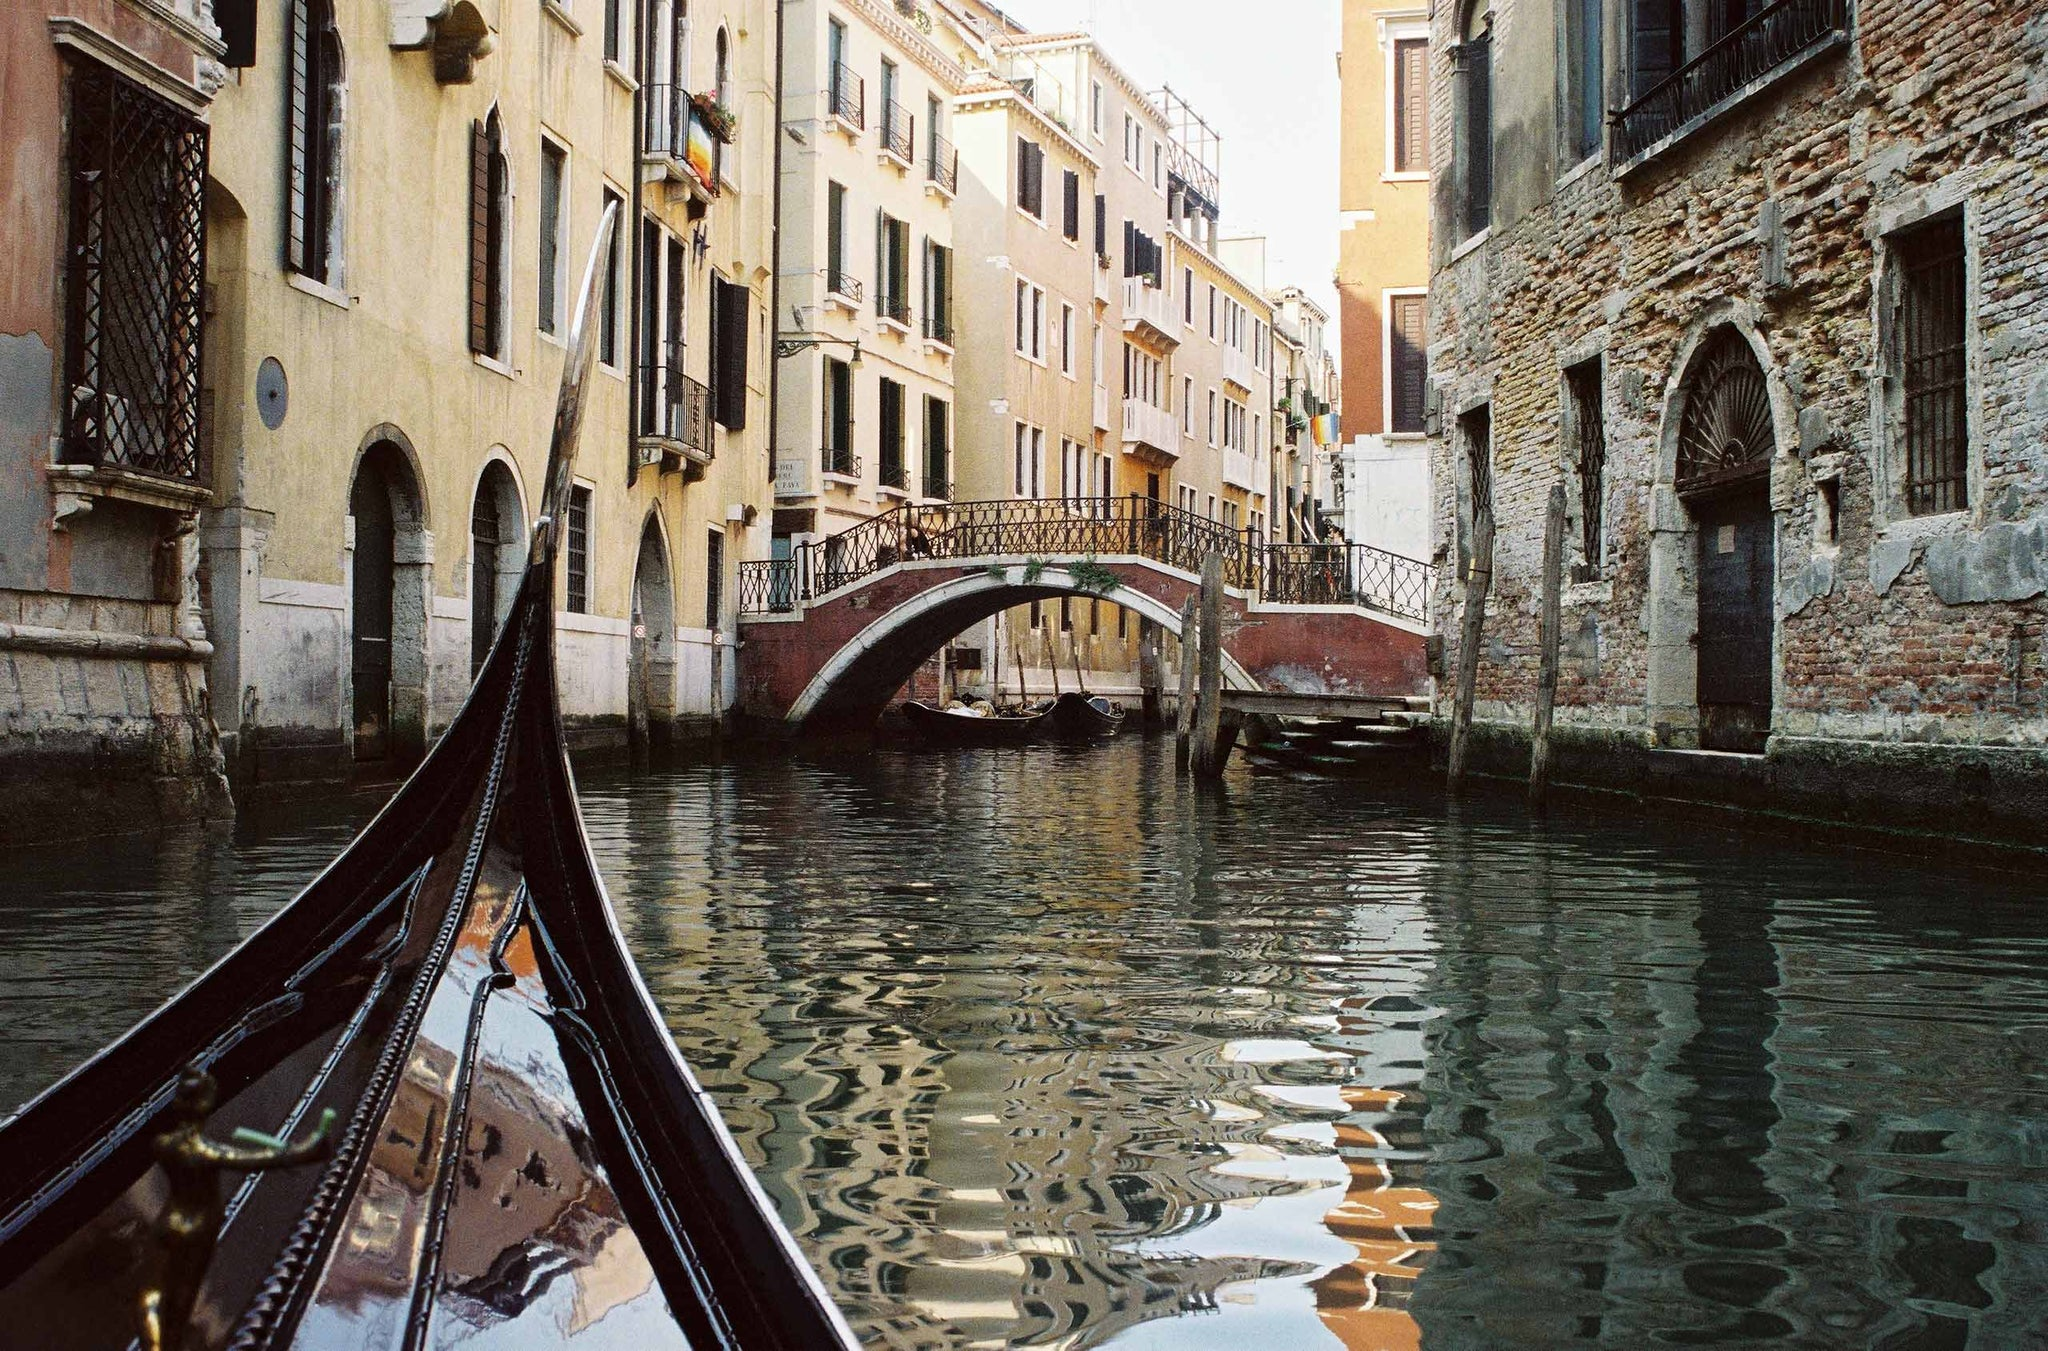 The front prow of a gondola points along the Venice canals as it travels towards the next bridge.